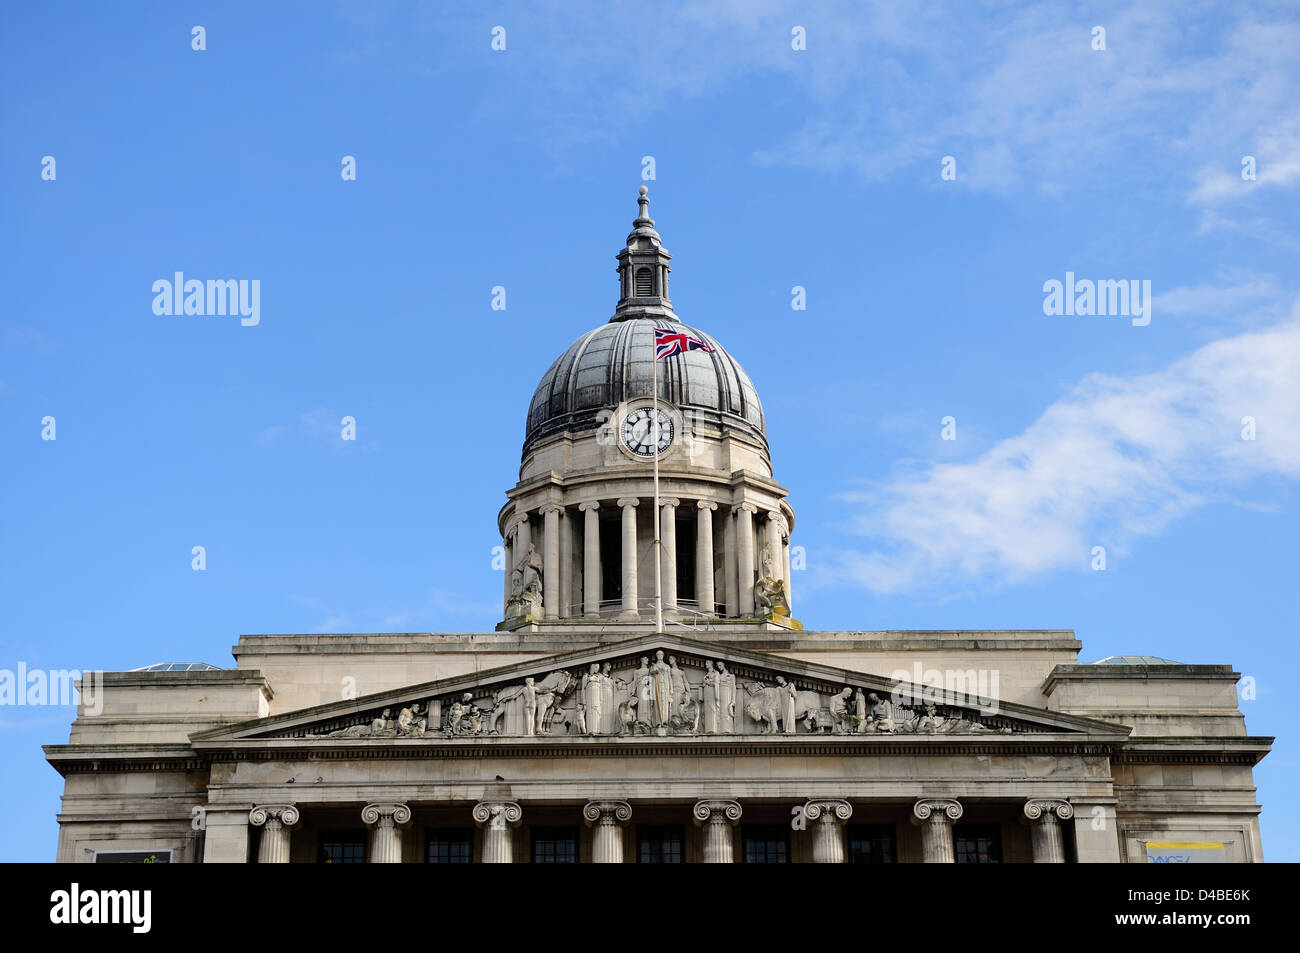 Nottingham City Council House,Old Market Square Nottingham,England. - Stock Image